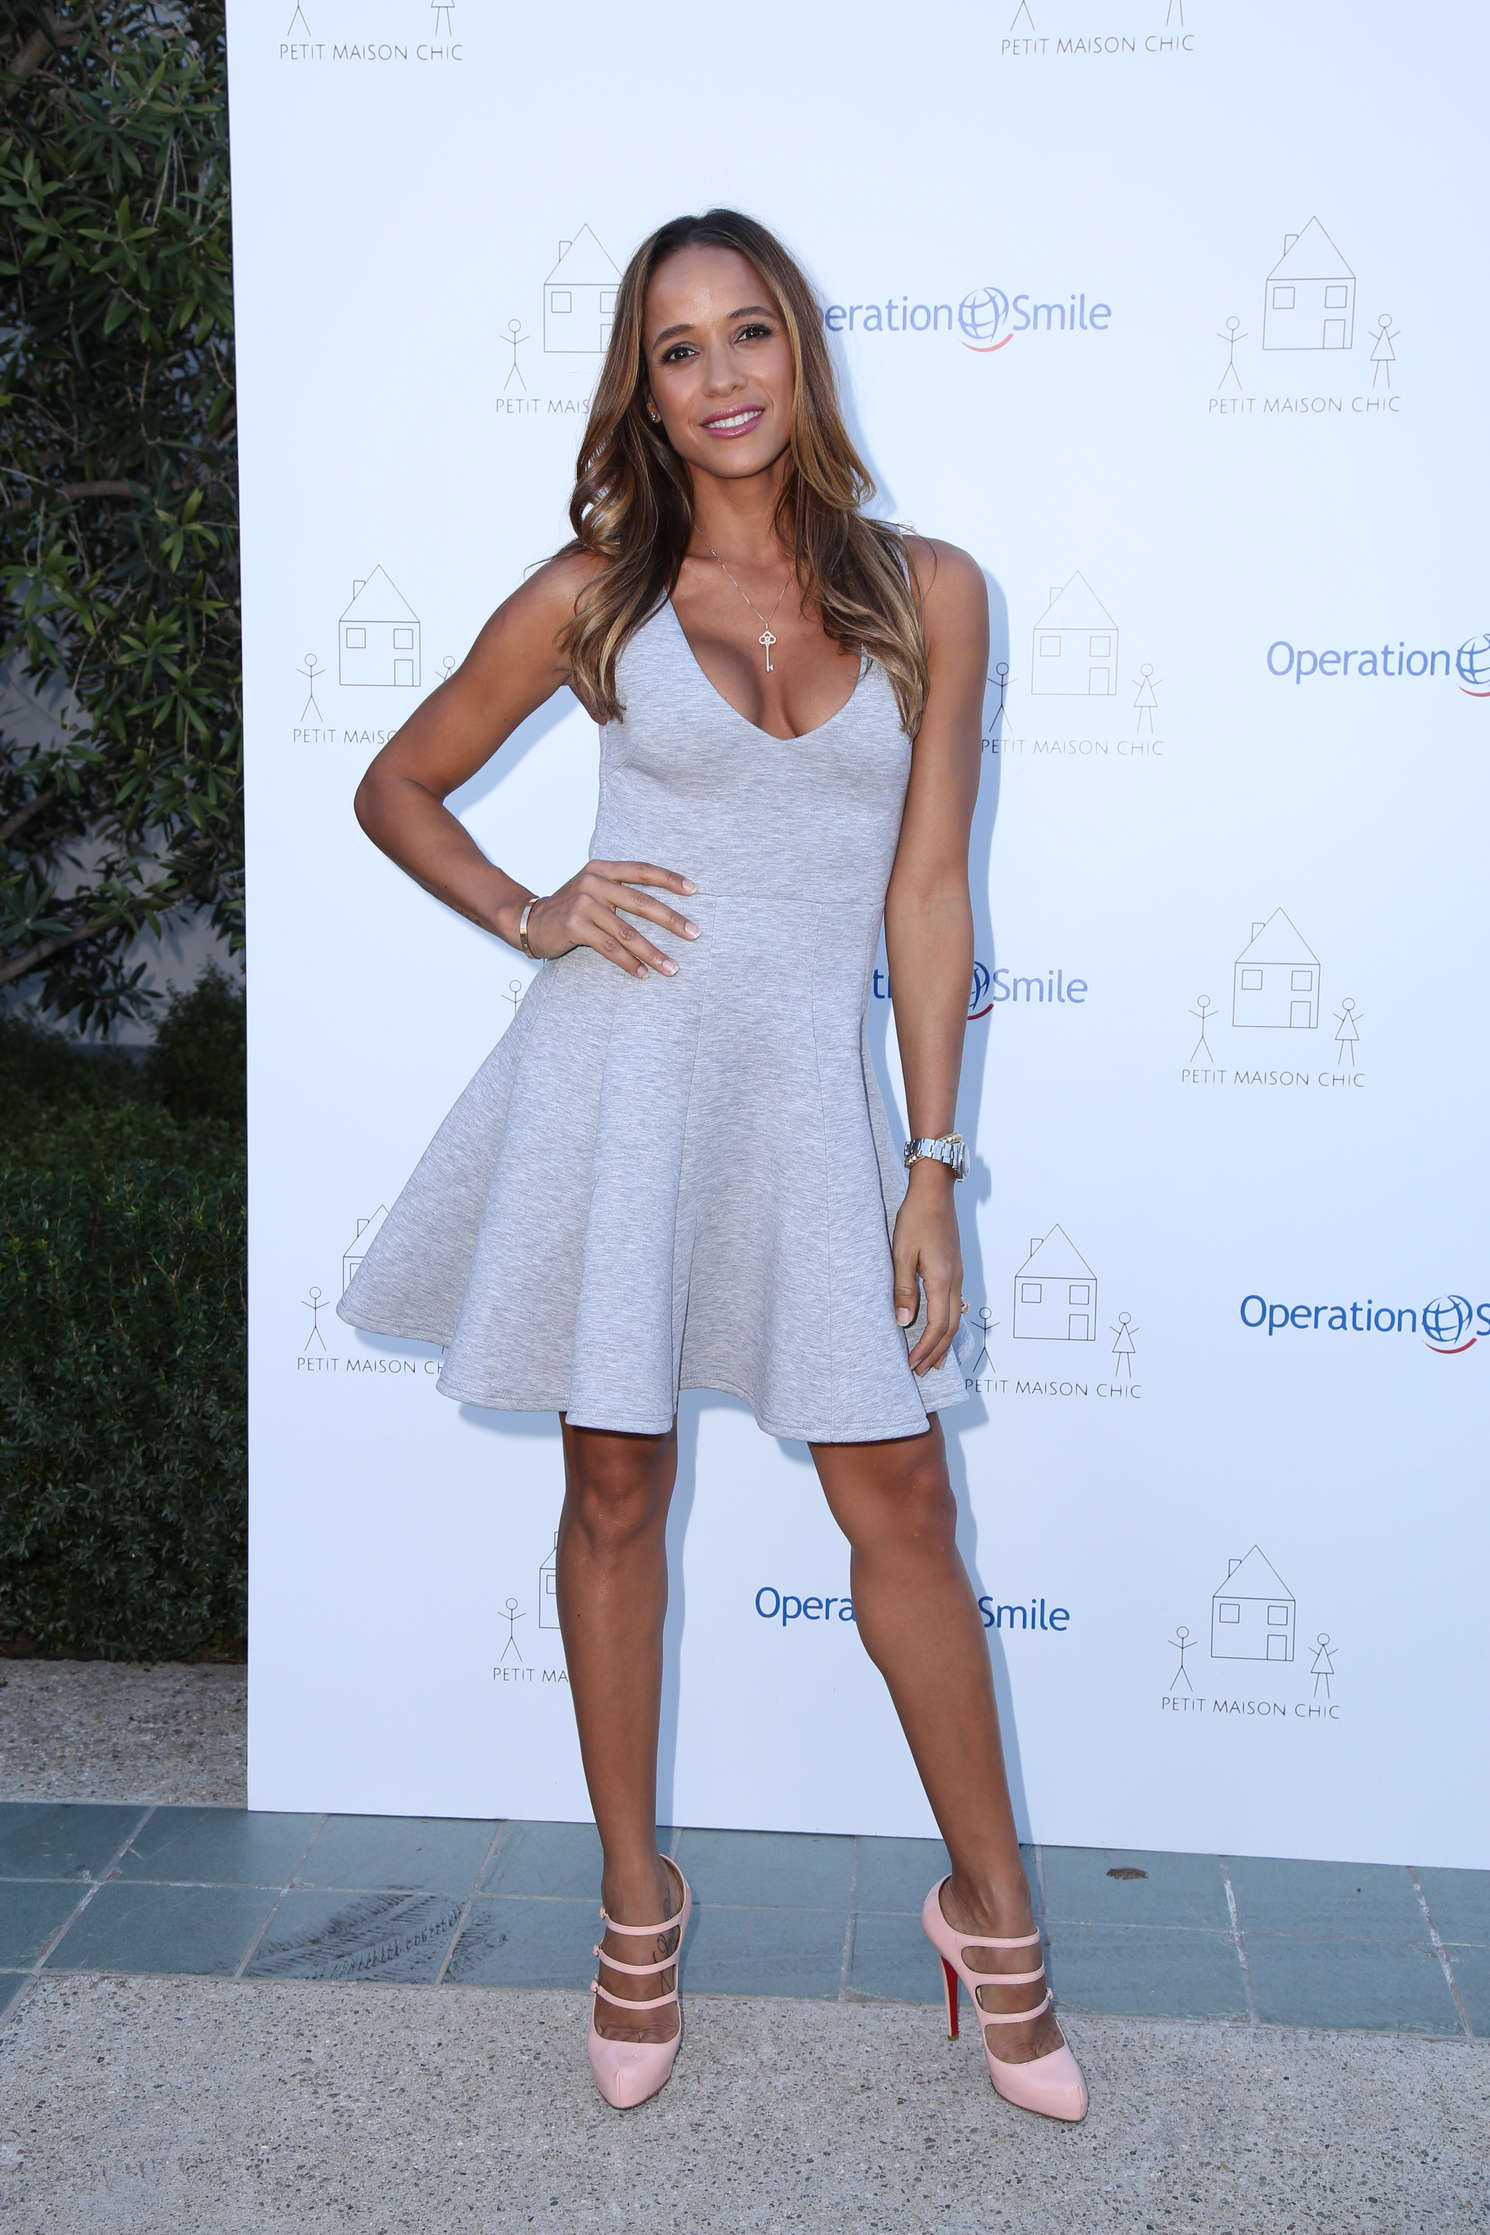 Dania ramirez petit maison chic fashion show 2015 03 for Fashion maison